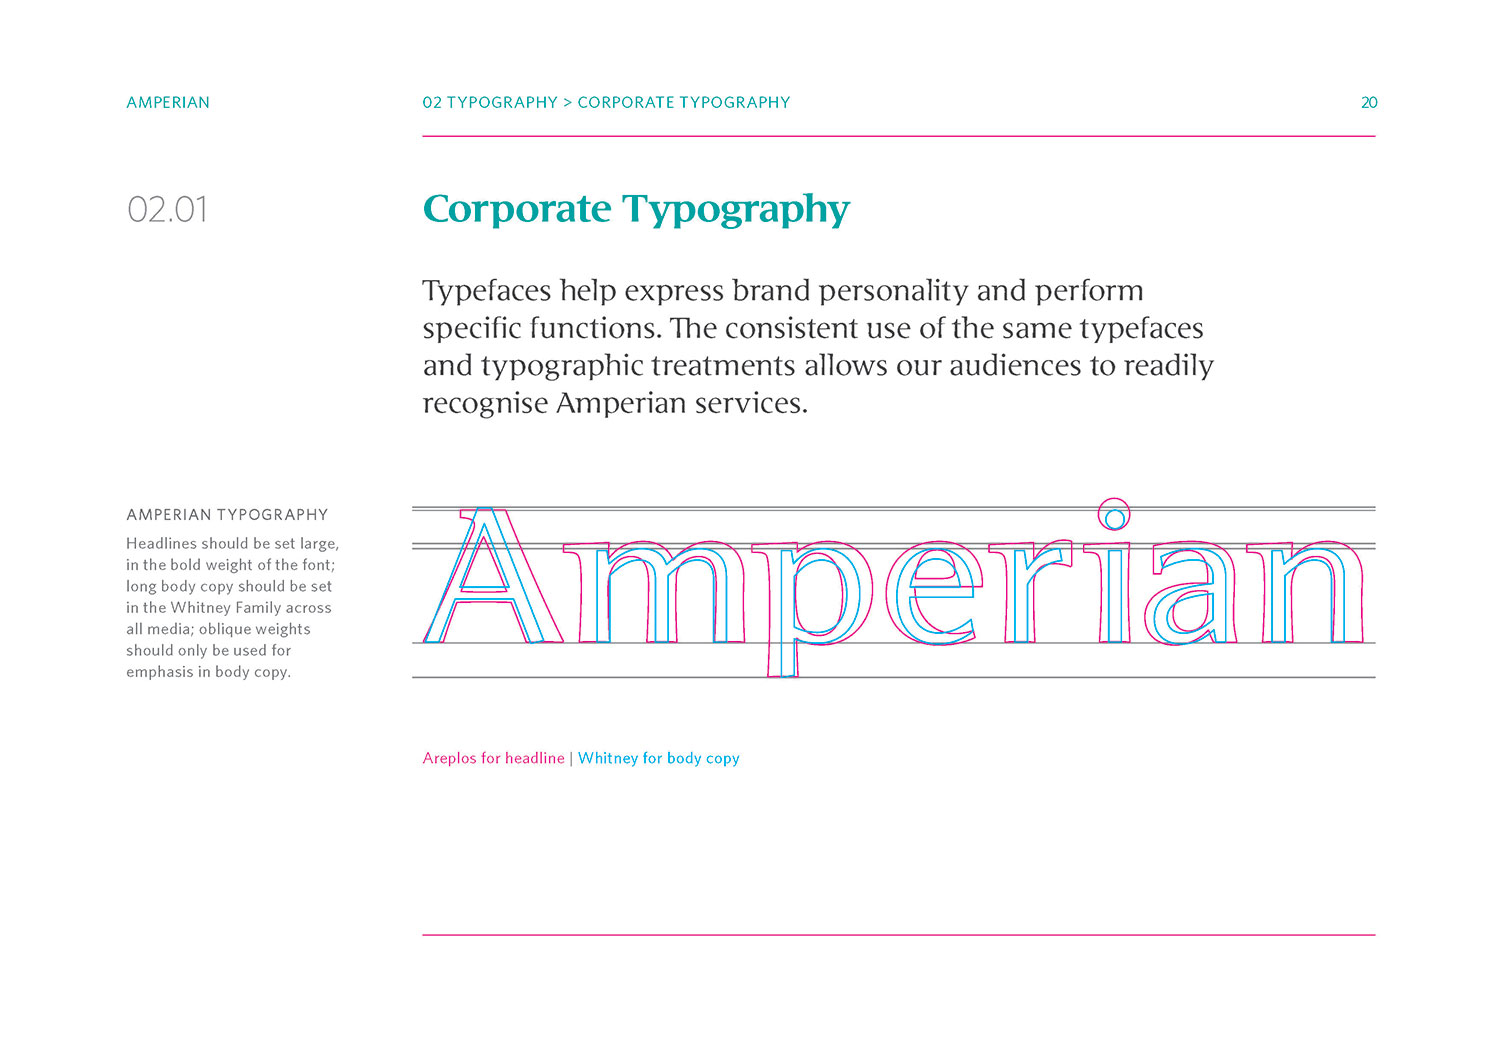 Amperian SG branding corporate identity design guide manual - Corporate Typography.